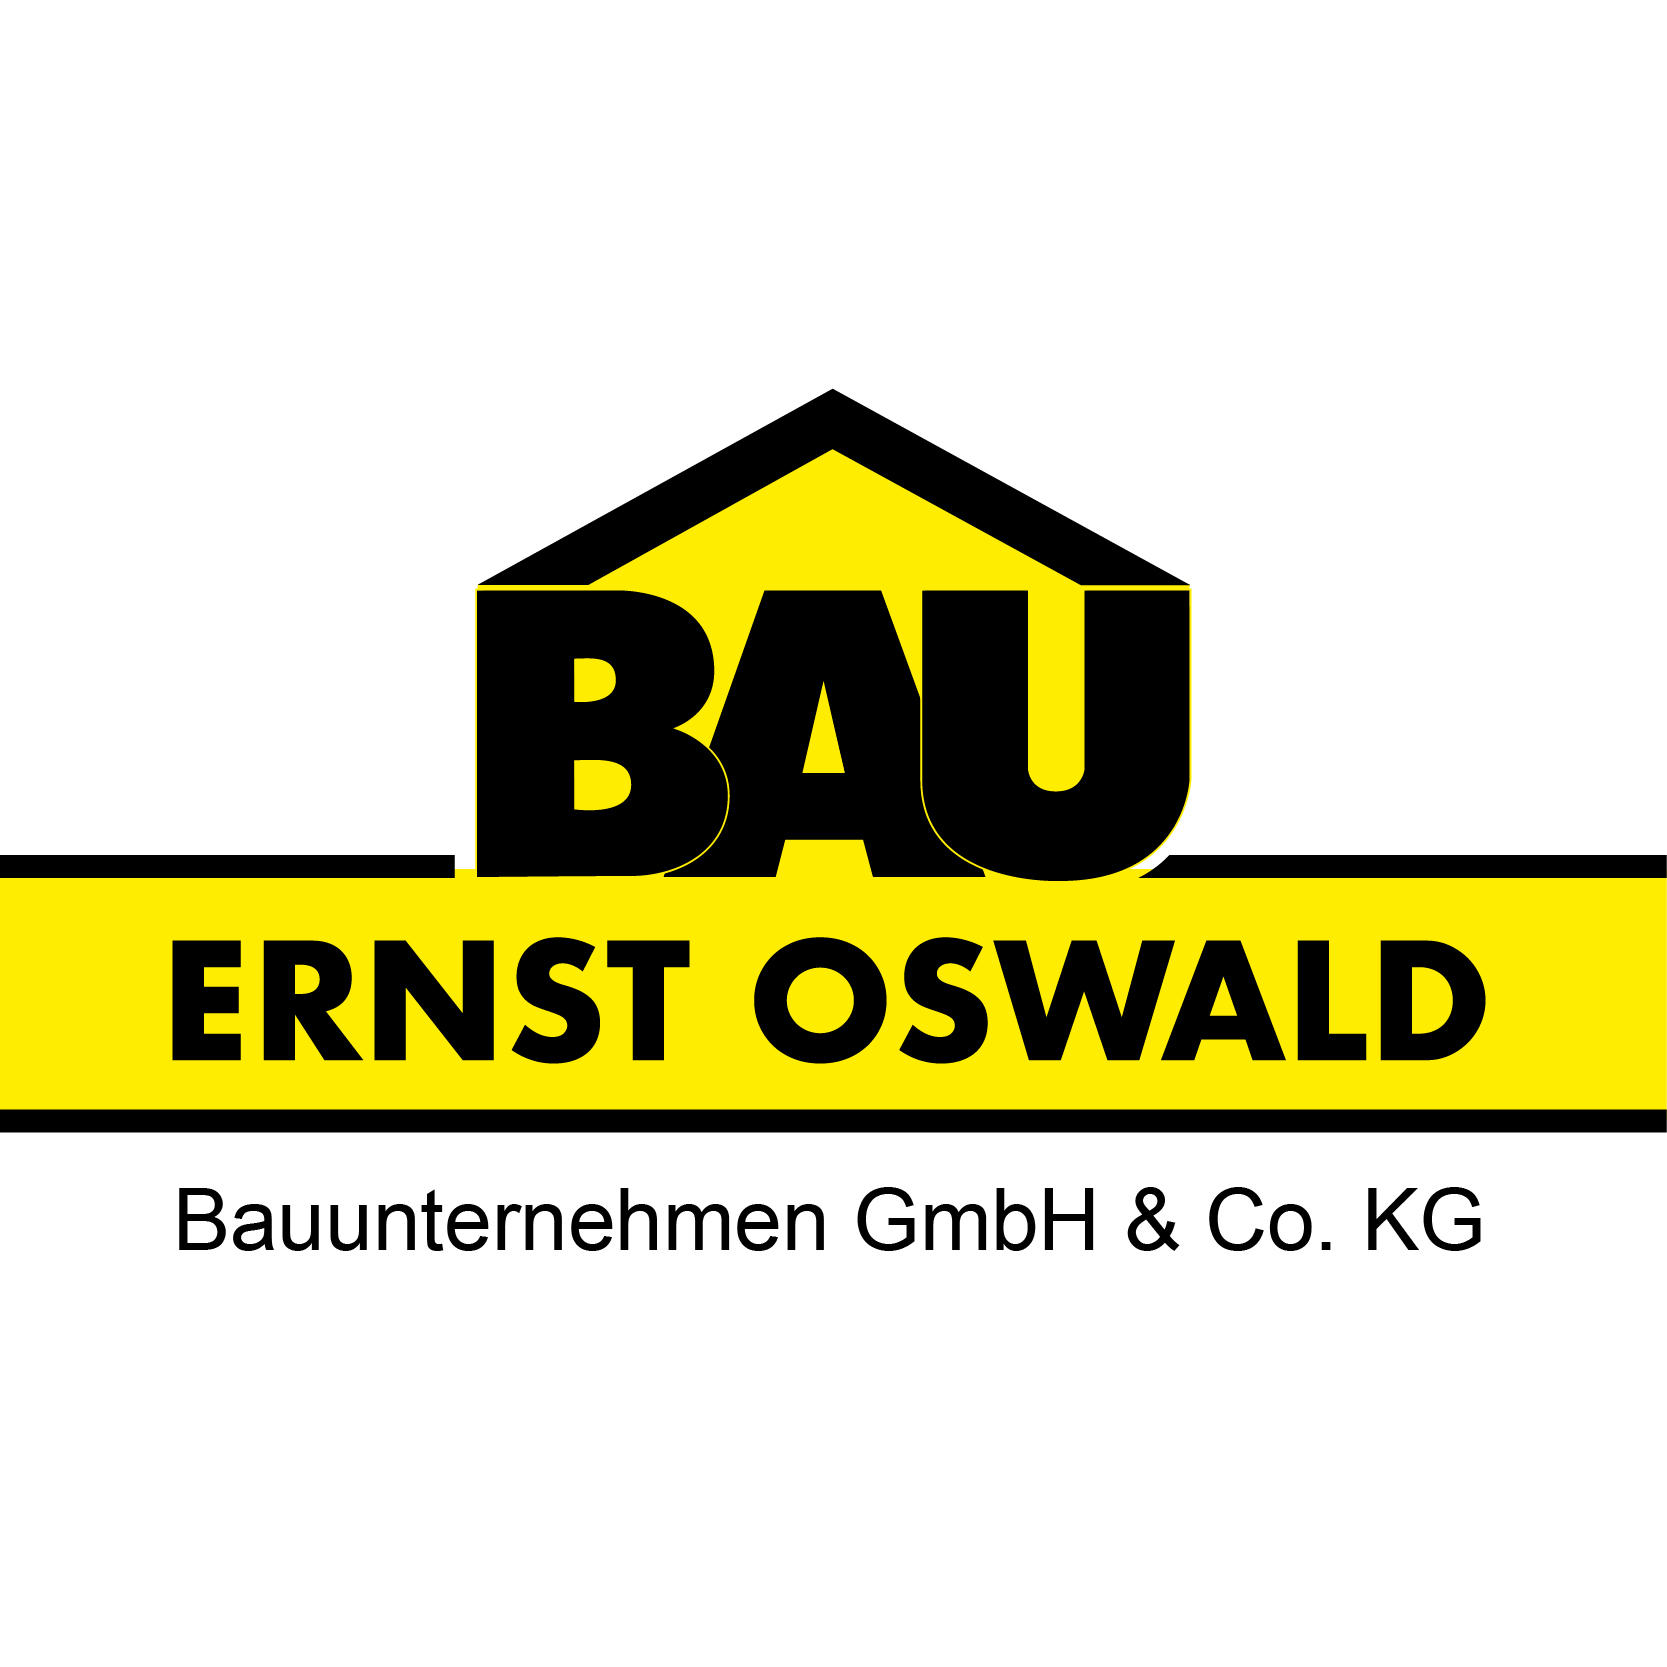 bauunternehmung ernst oswald gmbh co kg ffnungszeiten bauunternehmung ernst oswald gmbh. Black Bedroom Furniture Sets. Home Design Ideas